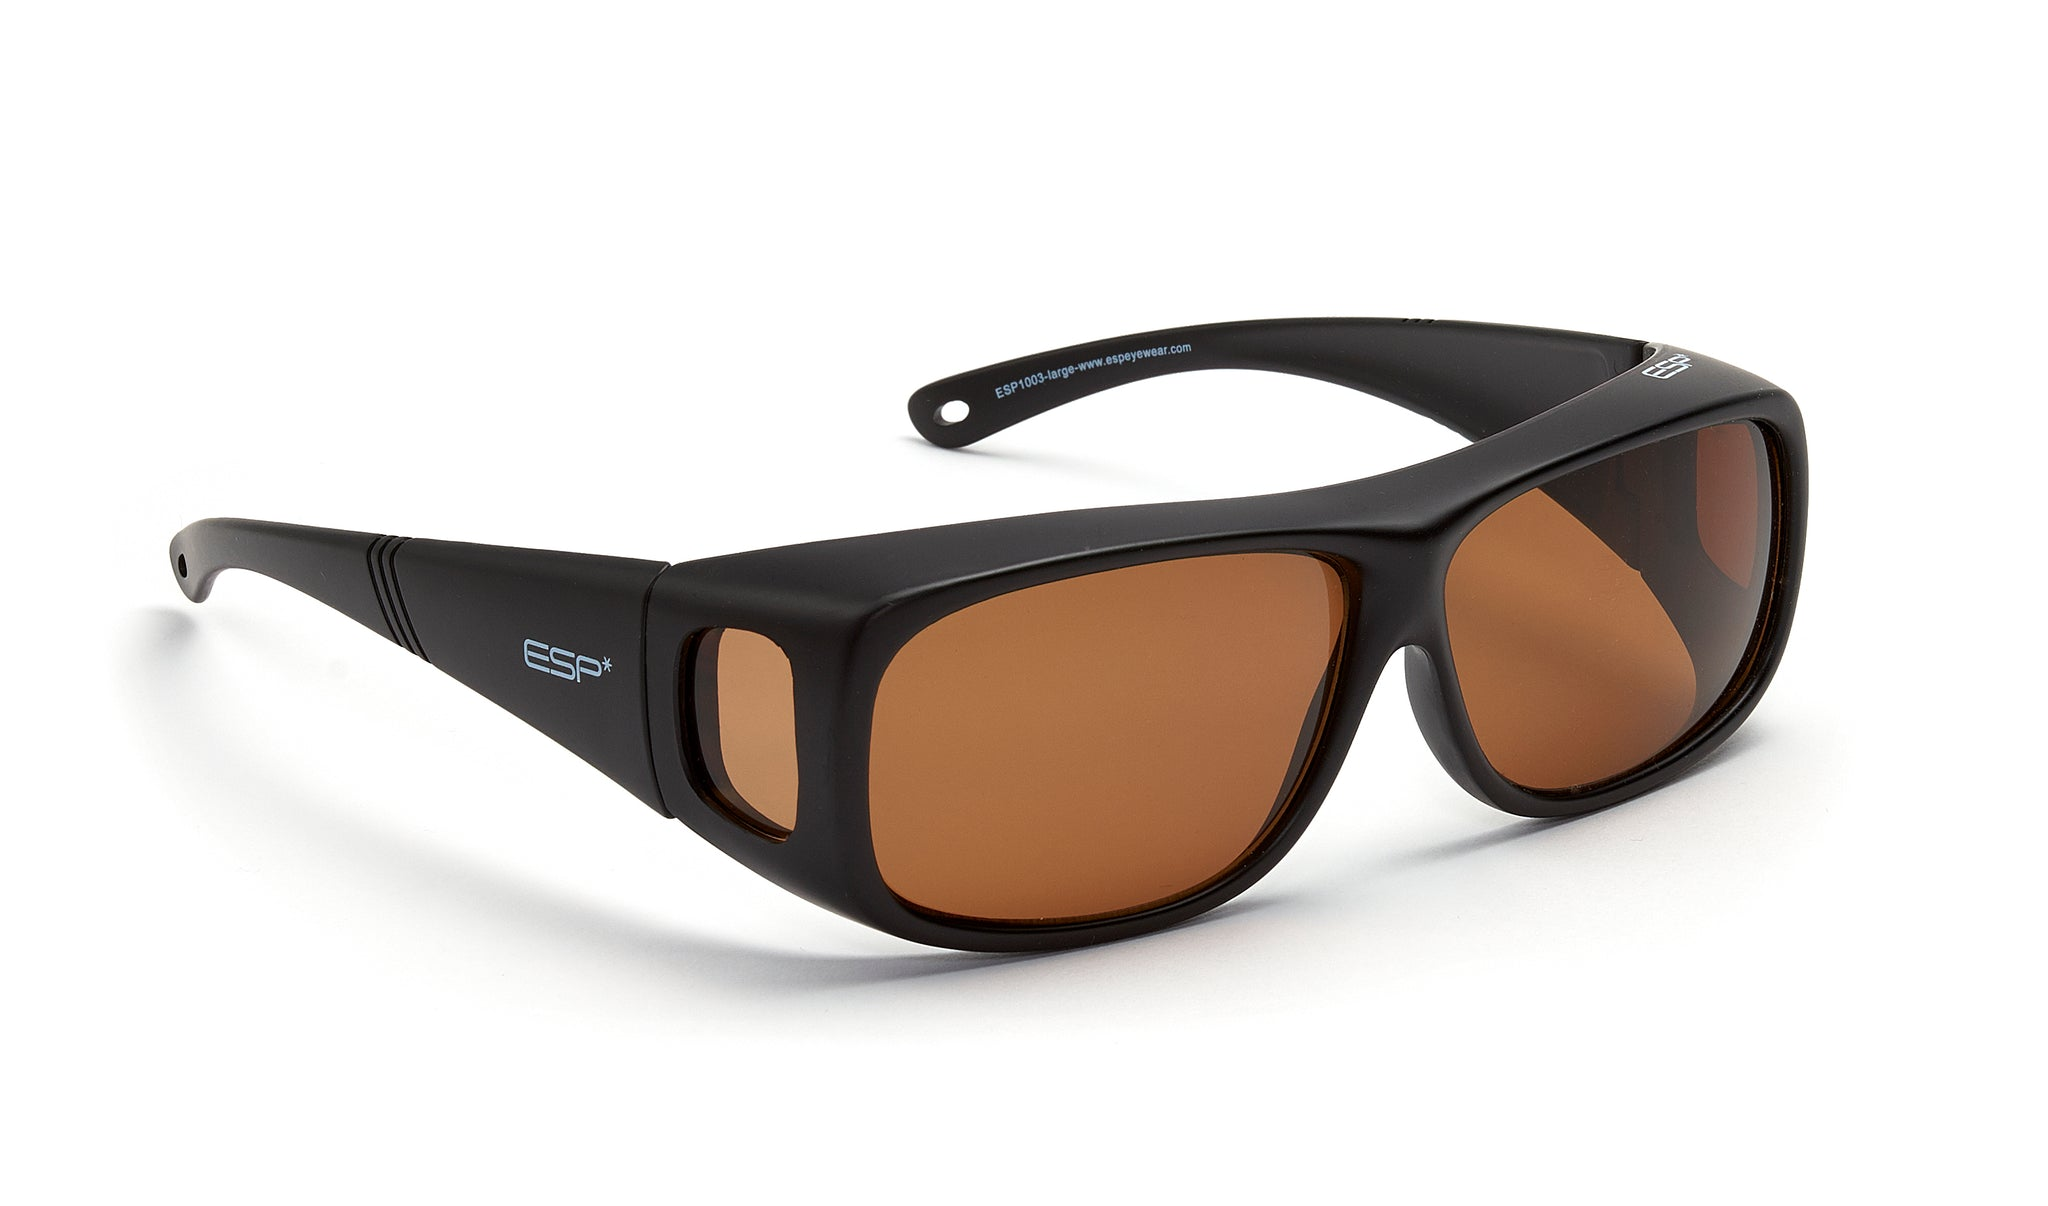 a01235af0ddaa Over the Glasses - Matte Black-Brown Lenses (2 Sizes) - espeyewear